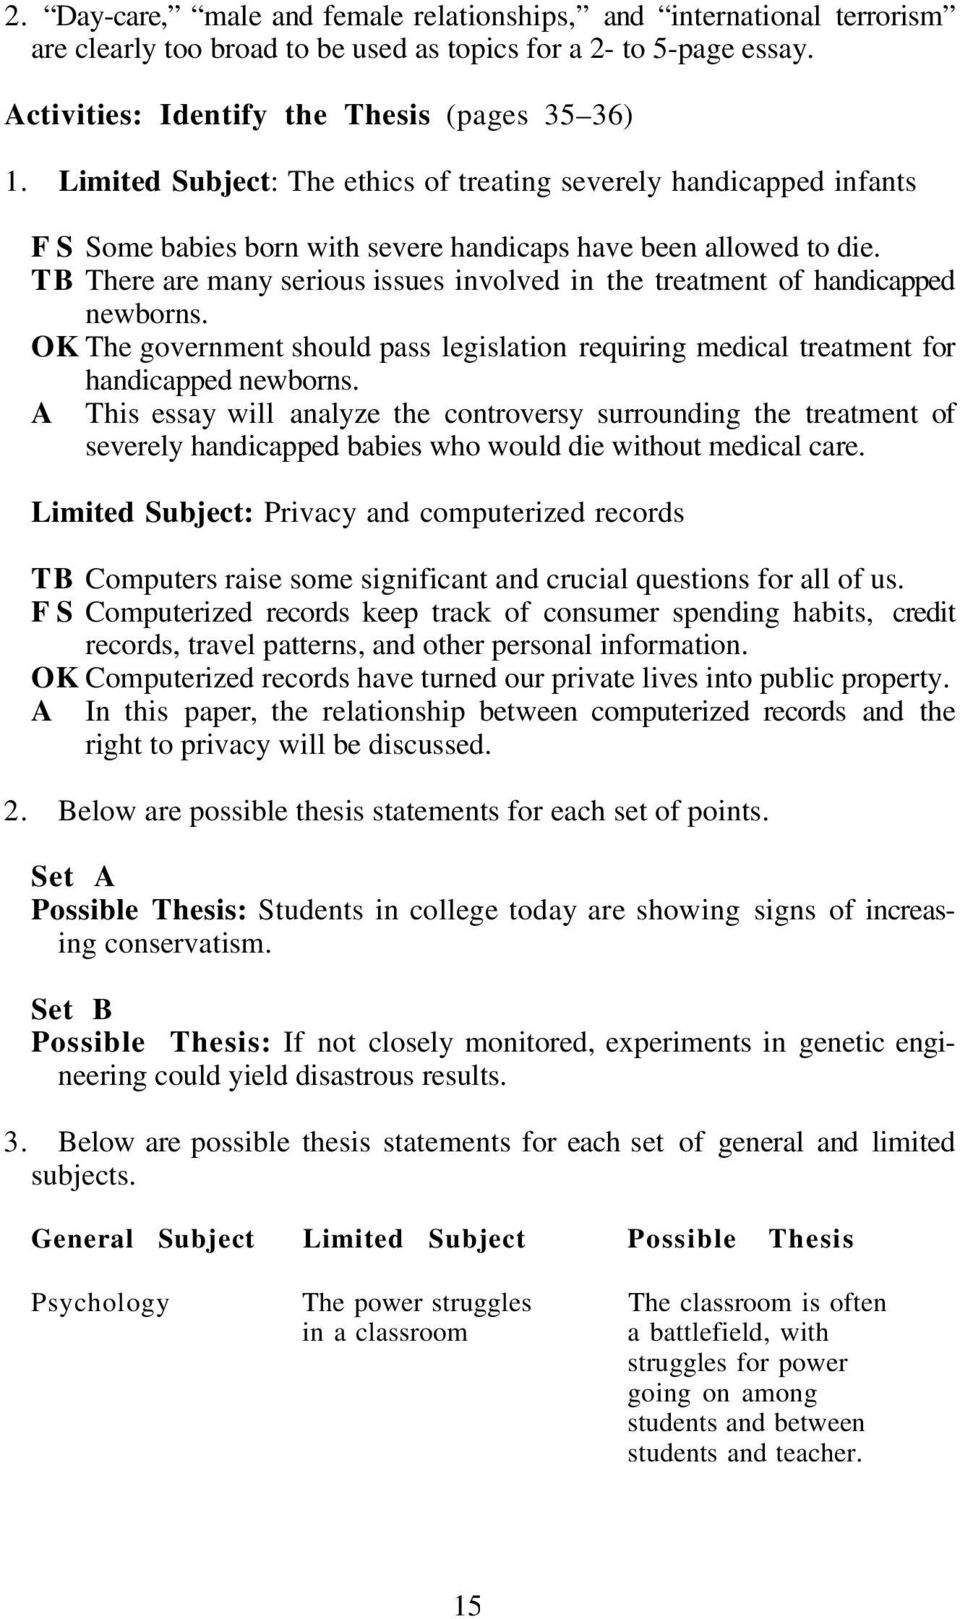 023 Page 20 Research Paper Argumentative Topics About Mental Rare Illness Health Full